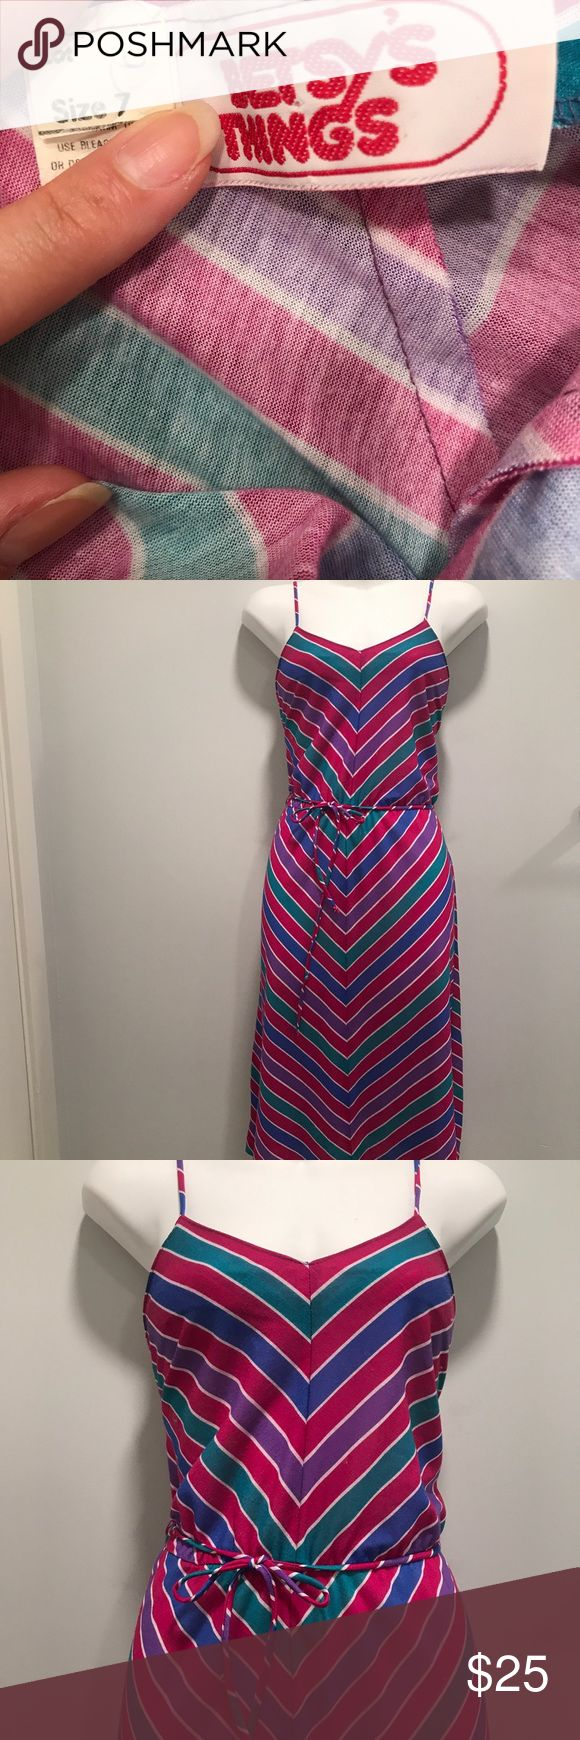 Retro multi Color Spaghetti Strap Dress Blast from the past with sass! Excellent fit and exploring with style. Matching belt included! Hello 70s!!Bust: up to 36 in. --------------------Waist: up to 34 in. -------------------shoulder to hem: about 44 in. betsy's things Dresses Midi